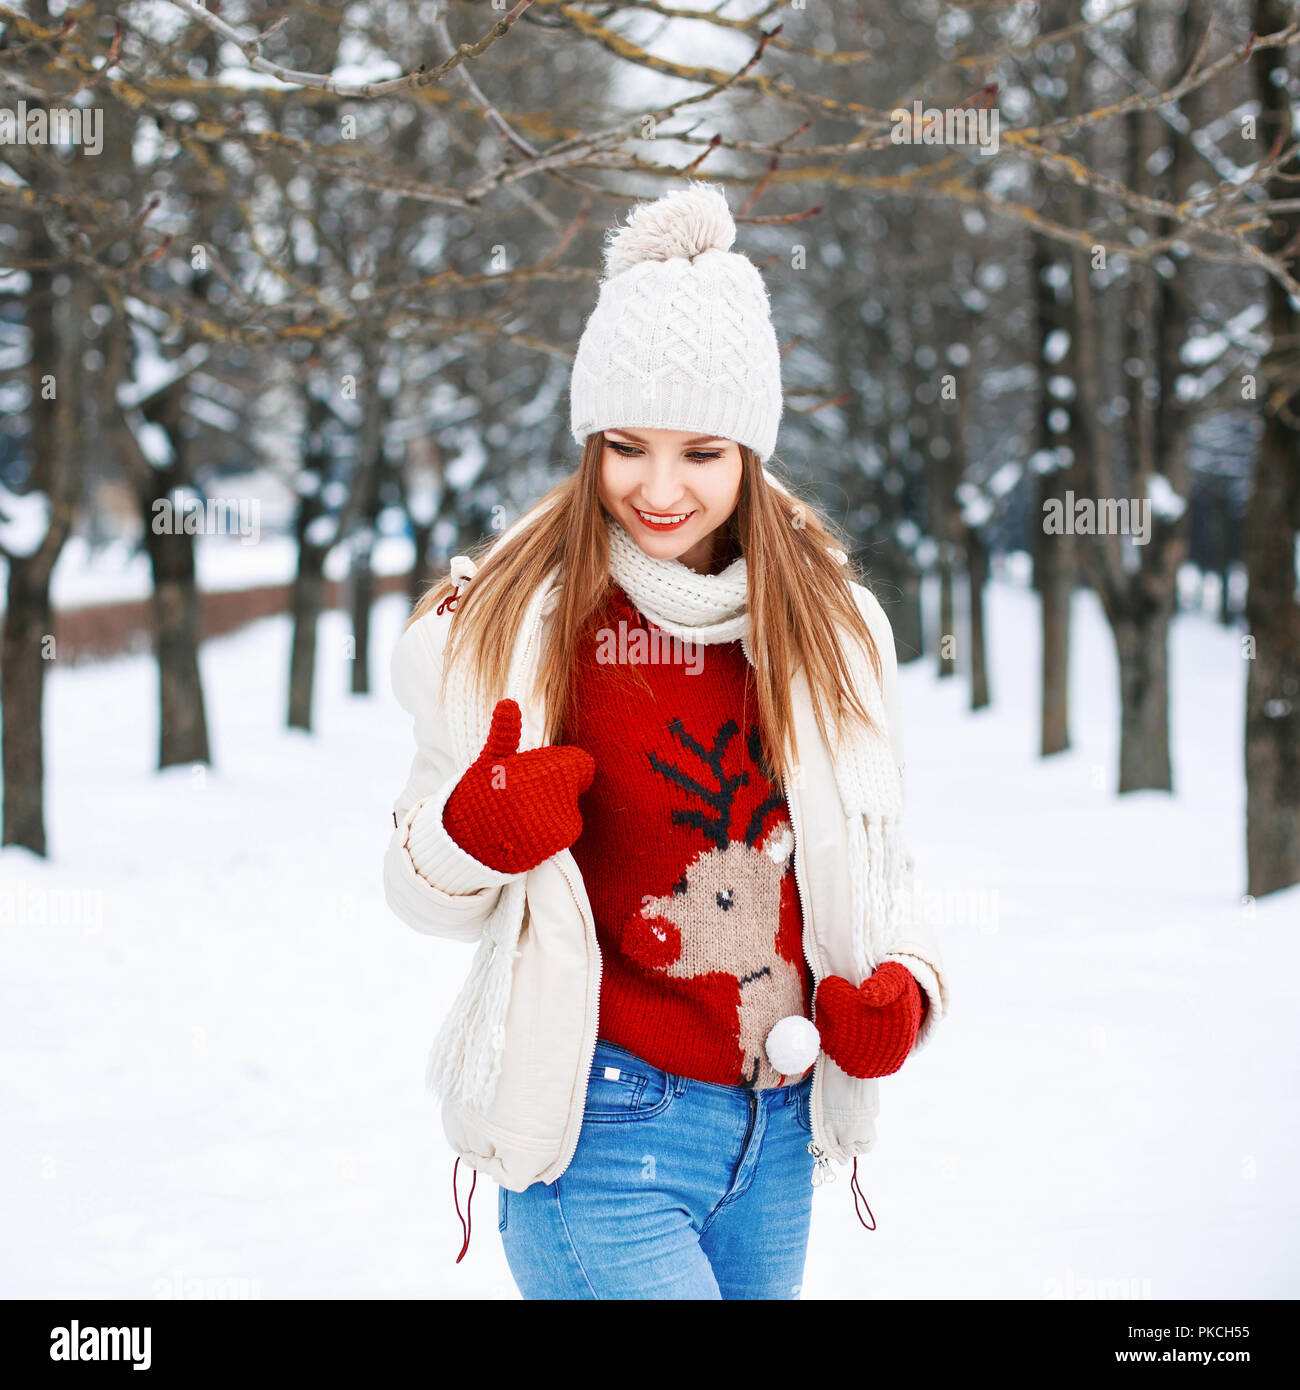 Lovely girl with a stylish retro sweater, a white winter jacket and knit cap  looking down on the background of the park